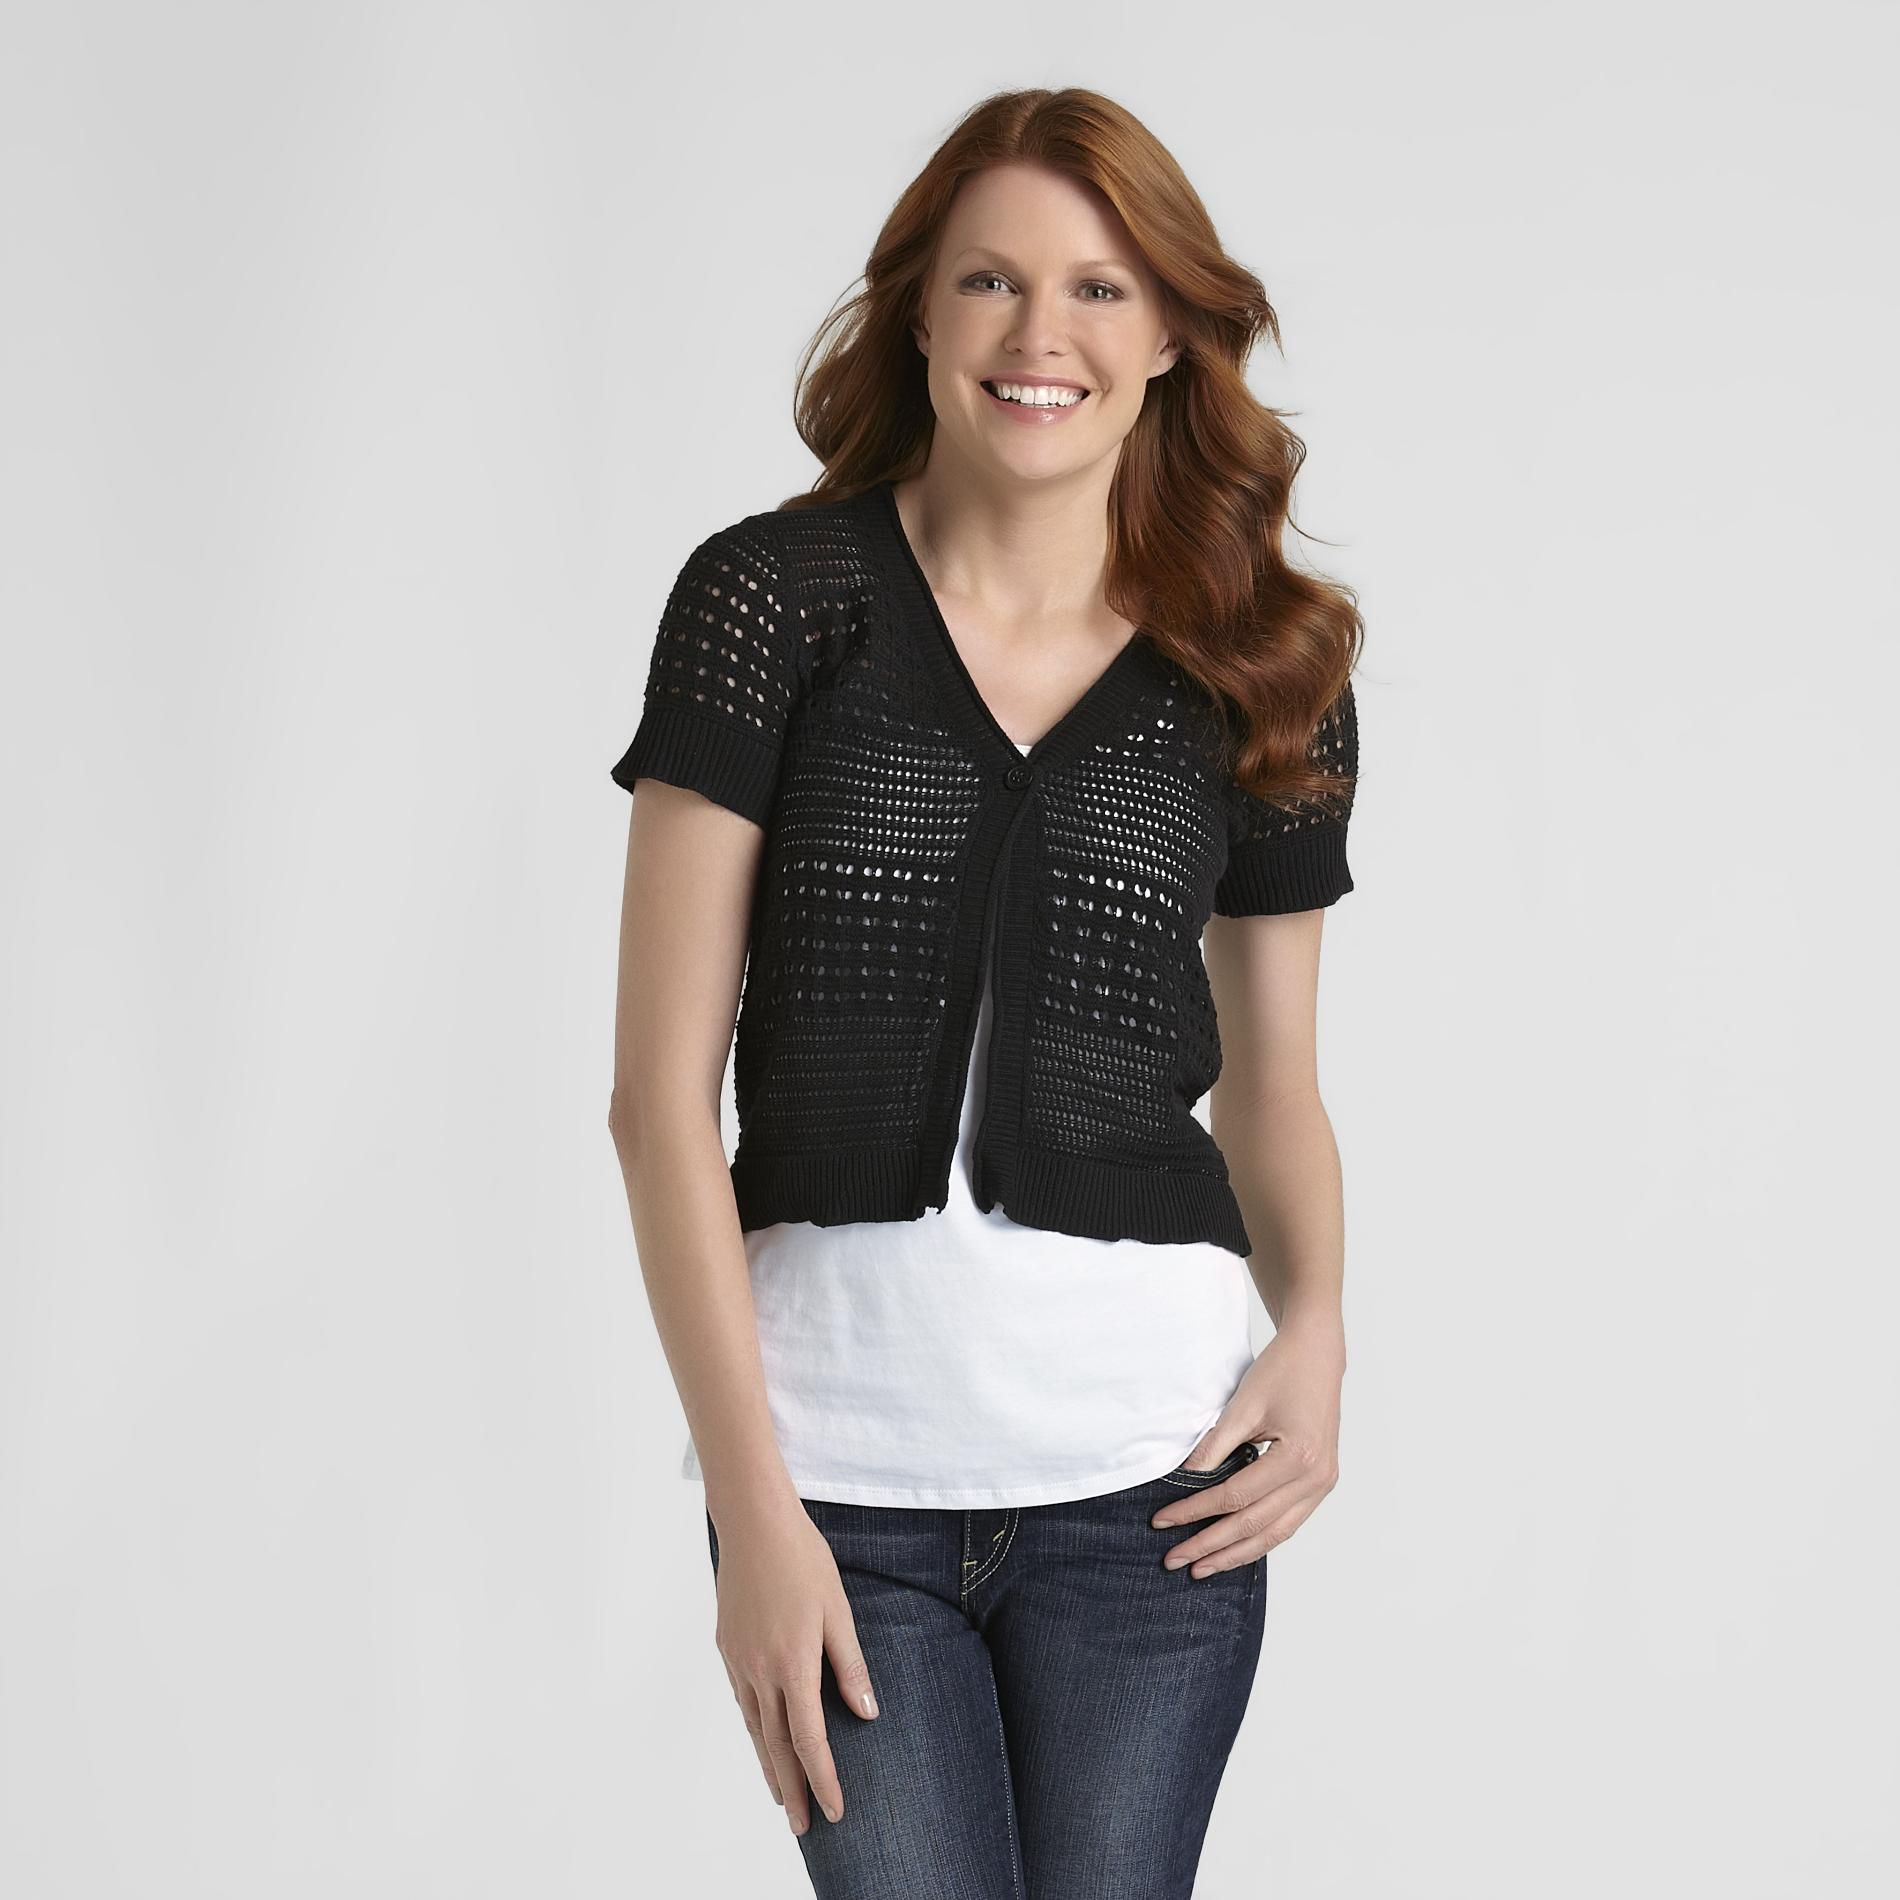 Basic Editions Women's Pointelle Cardigan at Kmart.com